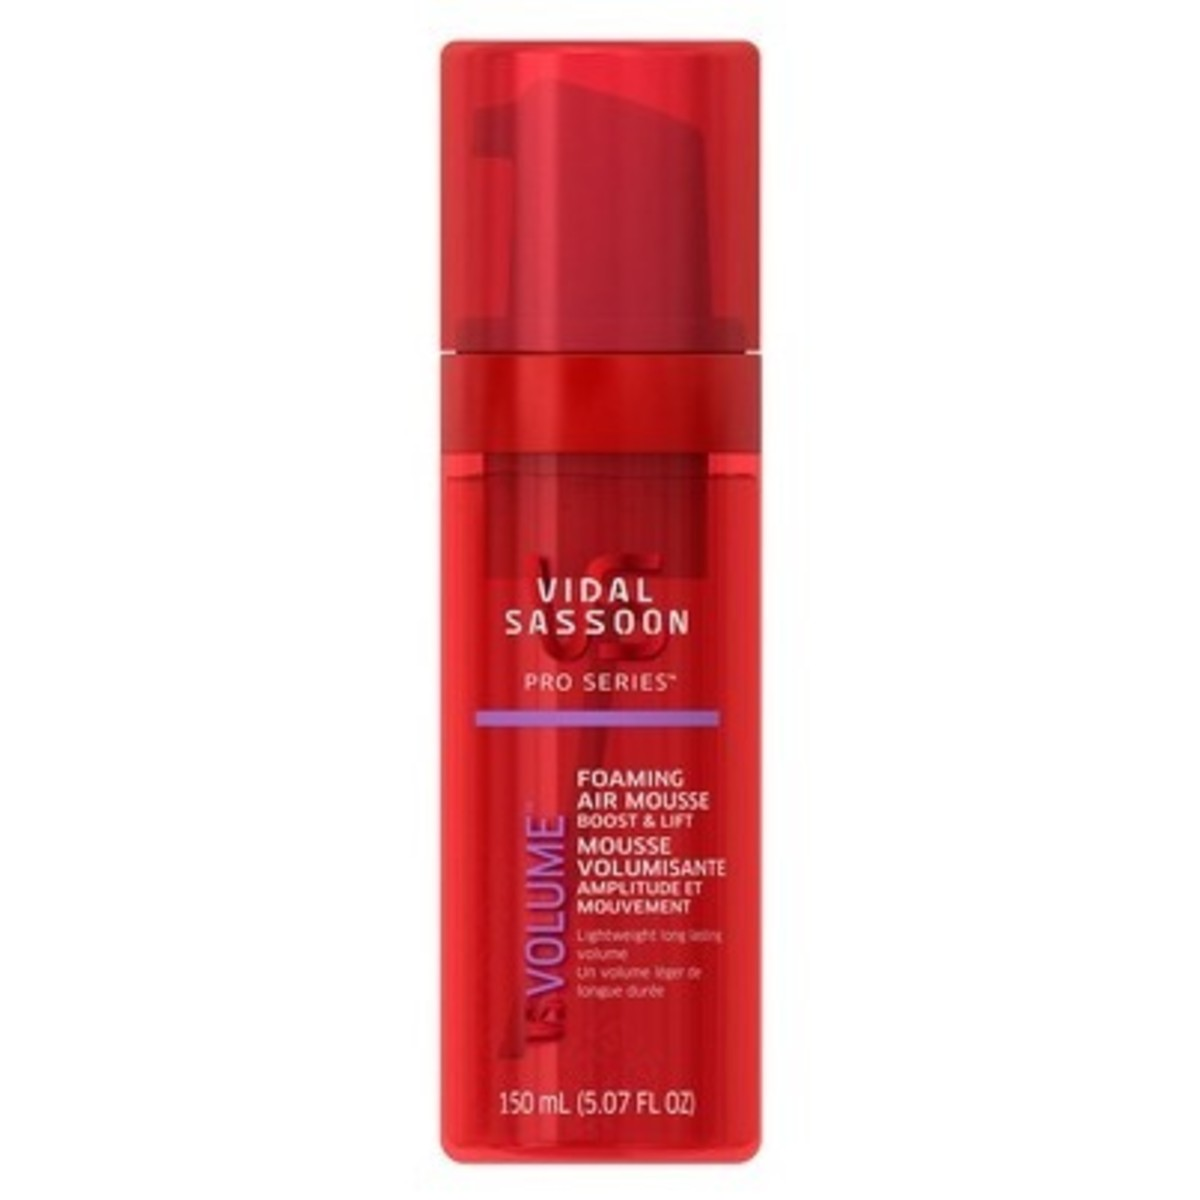 Vidal Sassoon Pro Series Boost & Lift Foaming Air Mousse